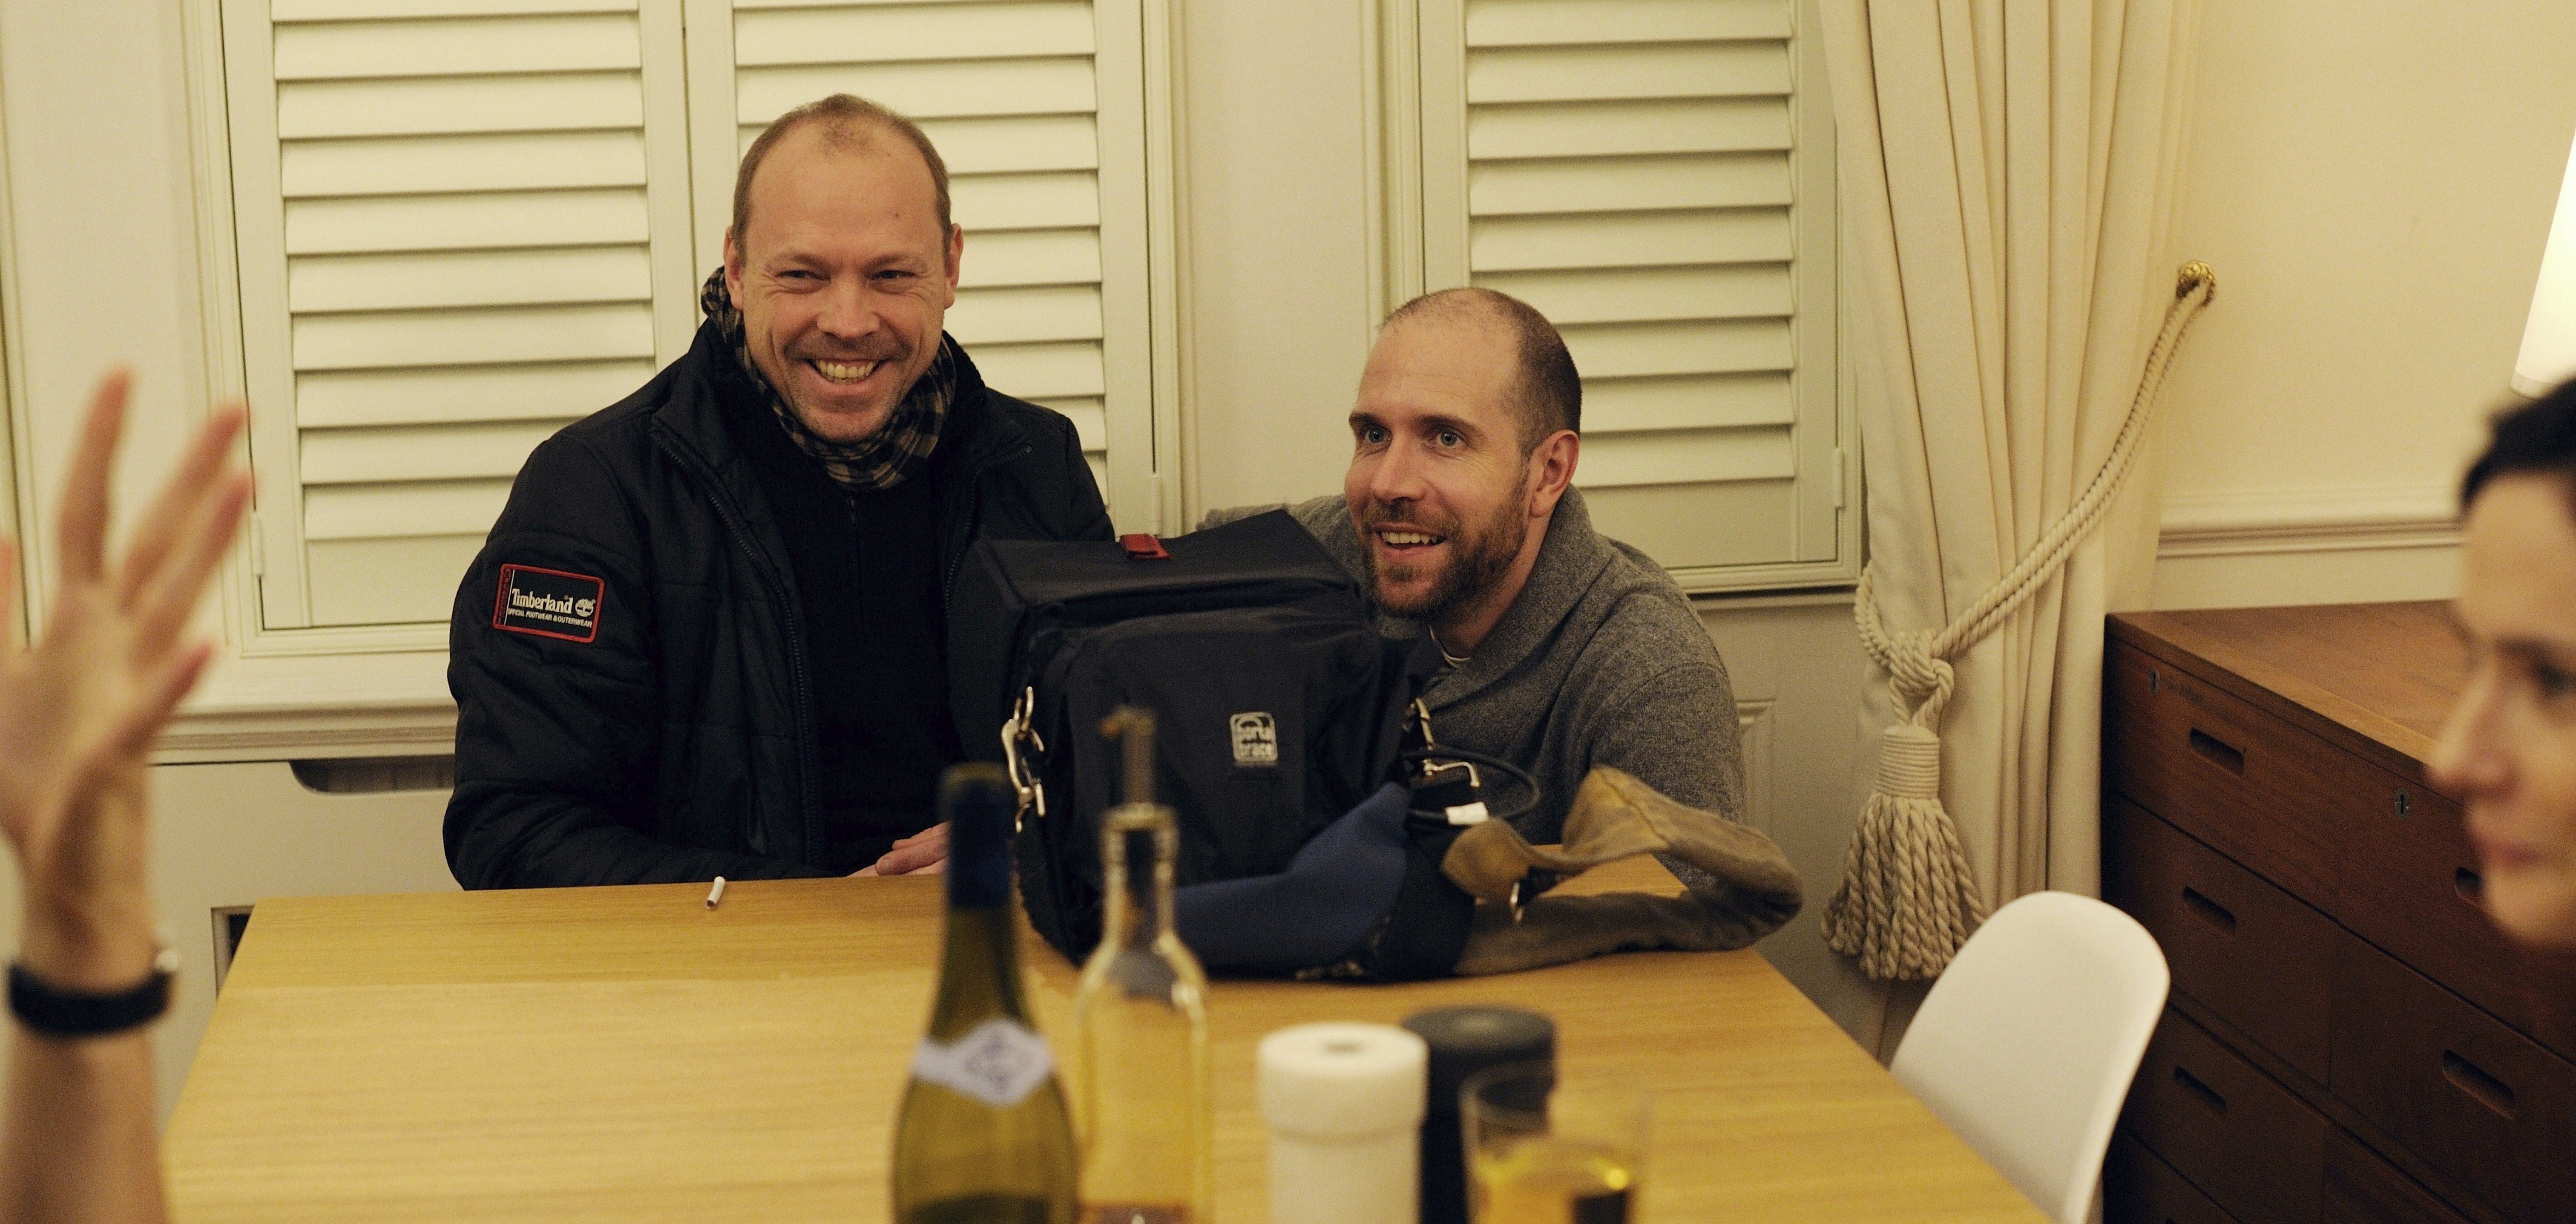 Behind the scenes - Love/Me/Do Writer/Director Martin Stitt with Producer Ian Prior